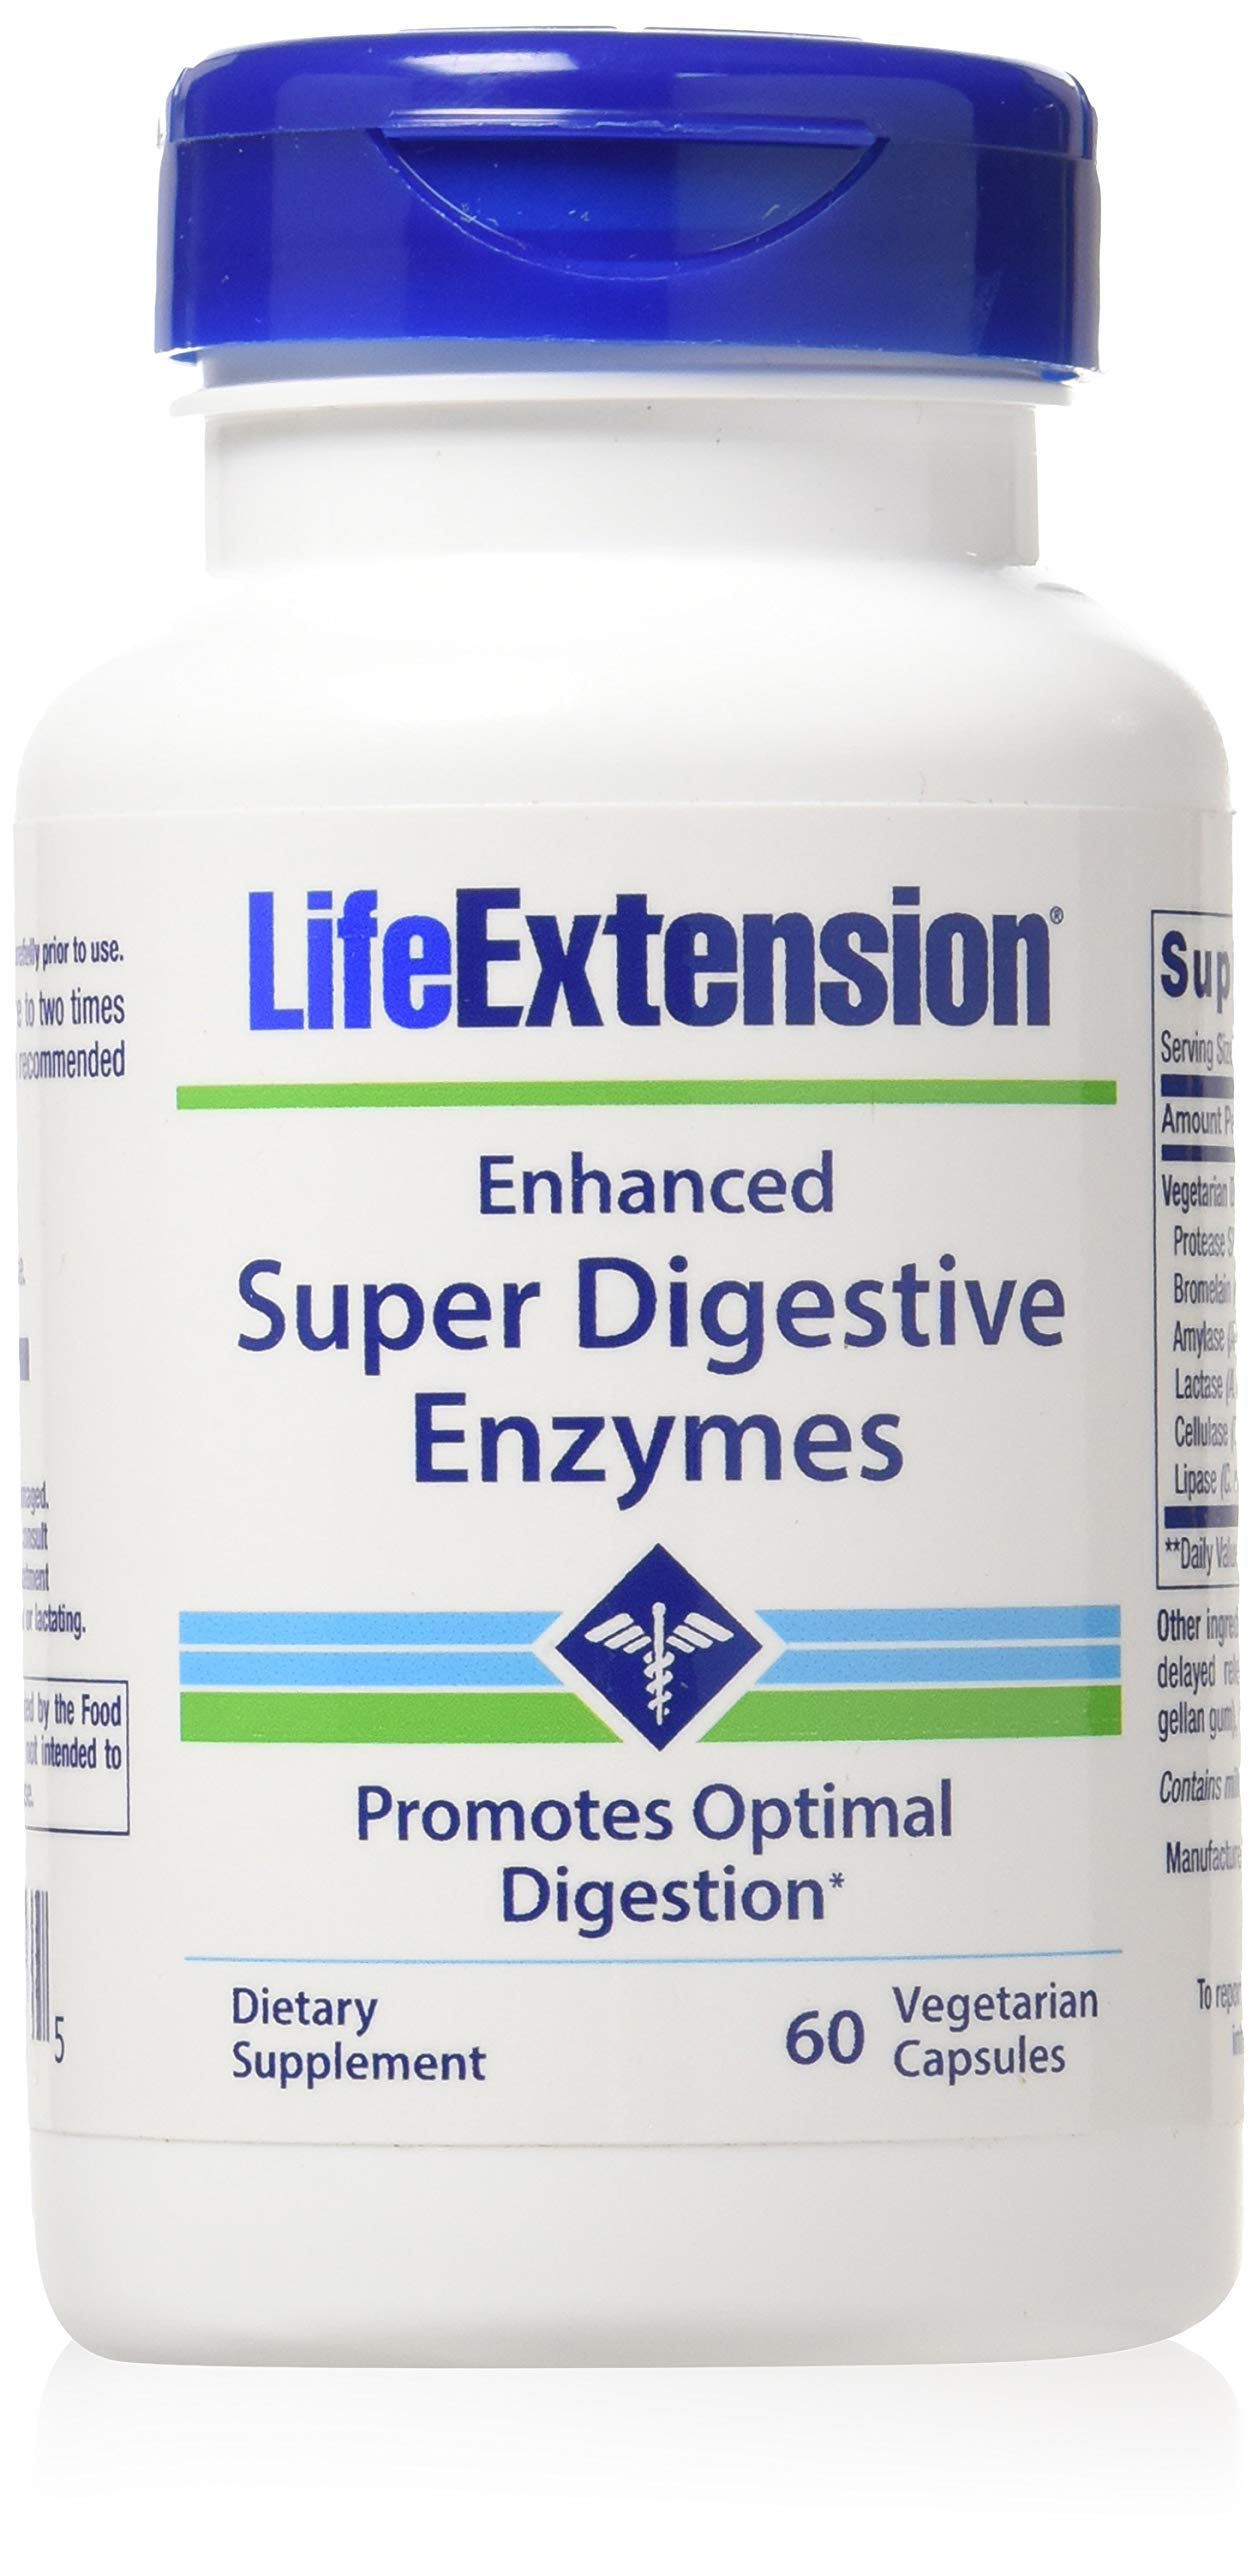 Life Extension Enhanced Super Digestive Enzymes 2-pack (2x60 Vegetarian Capsules) by Life Extension